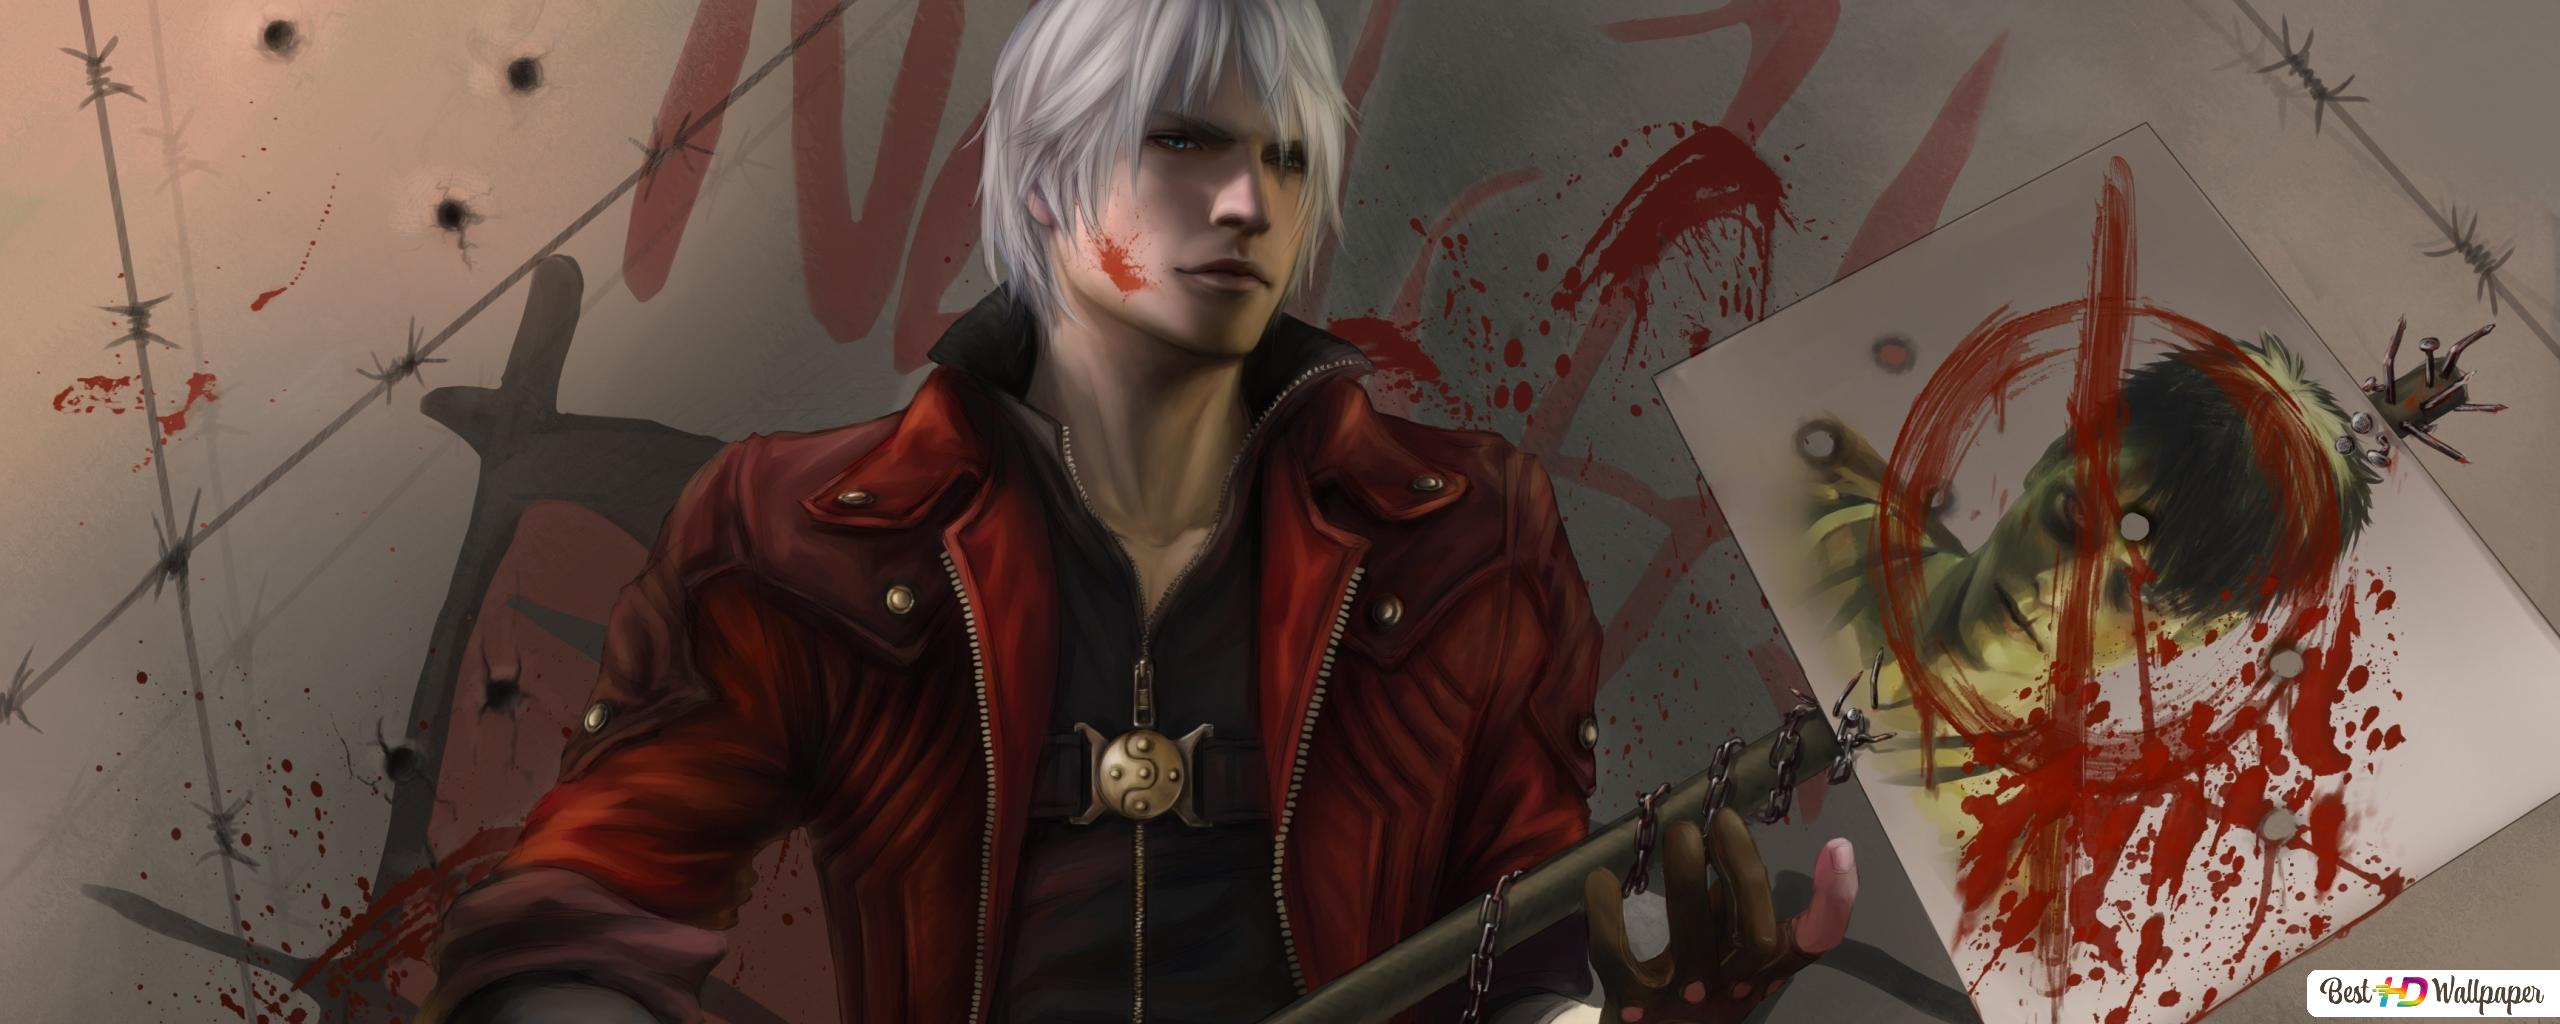 Devil May Cry Anime Dante Hd Wallpaper Download